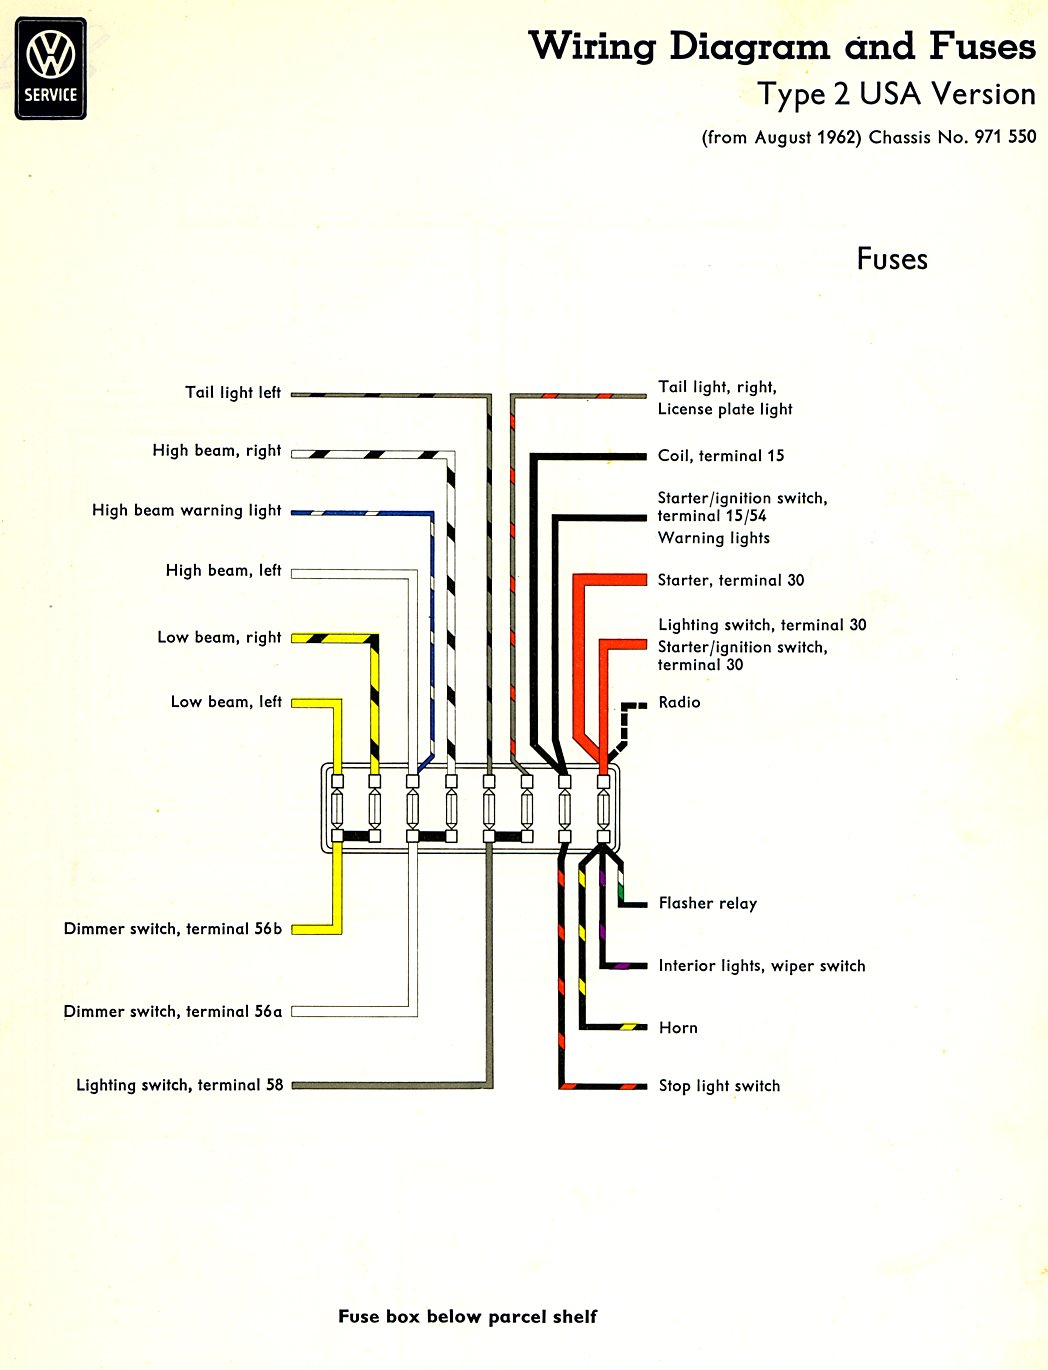 Vw Vanagon Fuse Box Diagram 1995 Simple Electrical Wiring Thesamba Com Type 2 Diagrams 1985